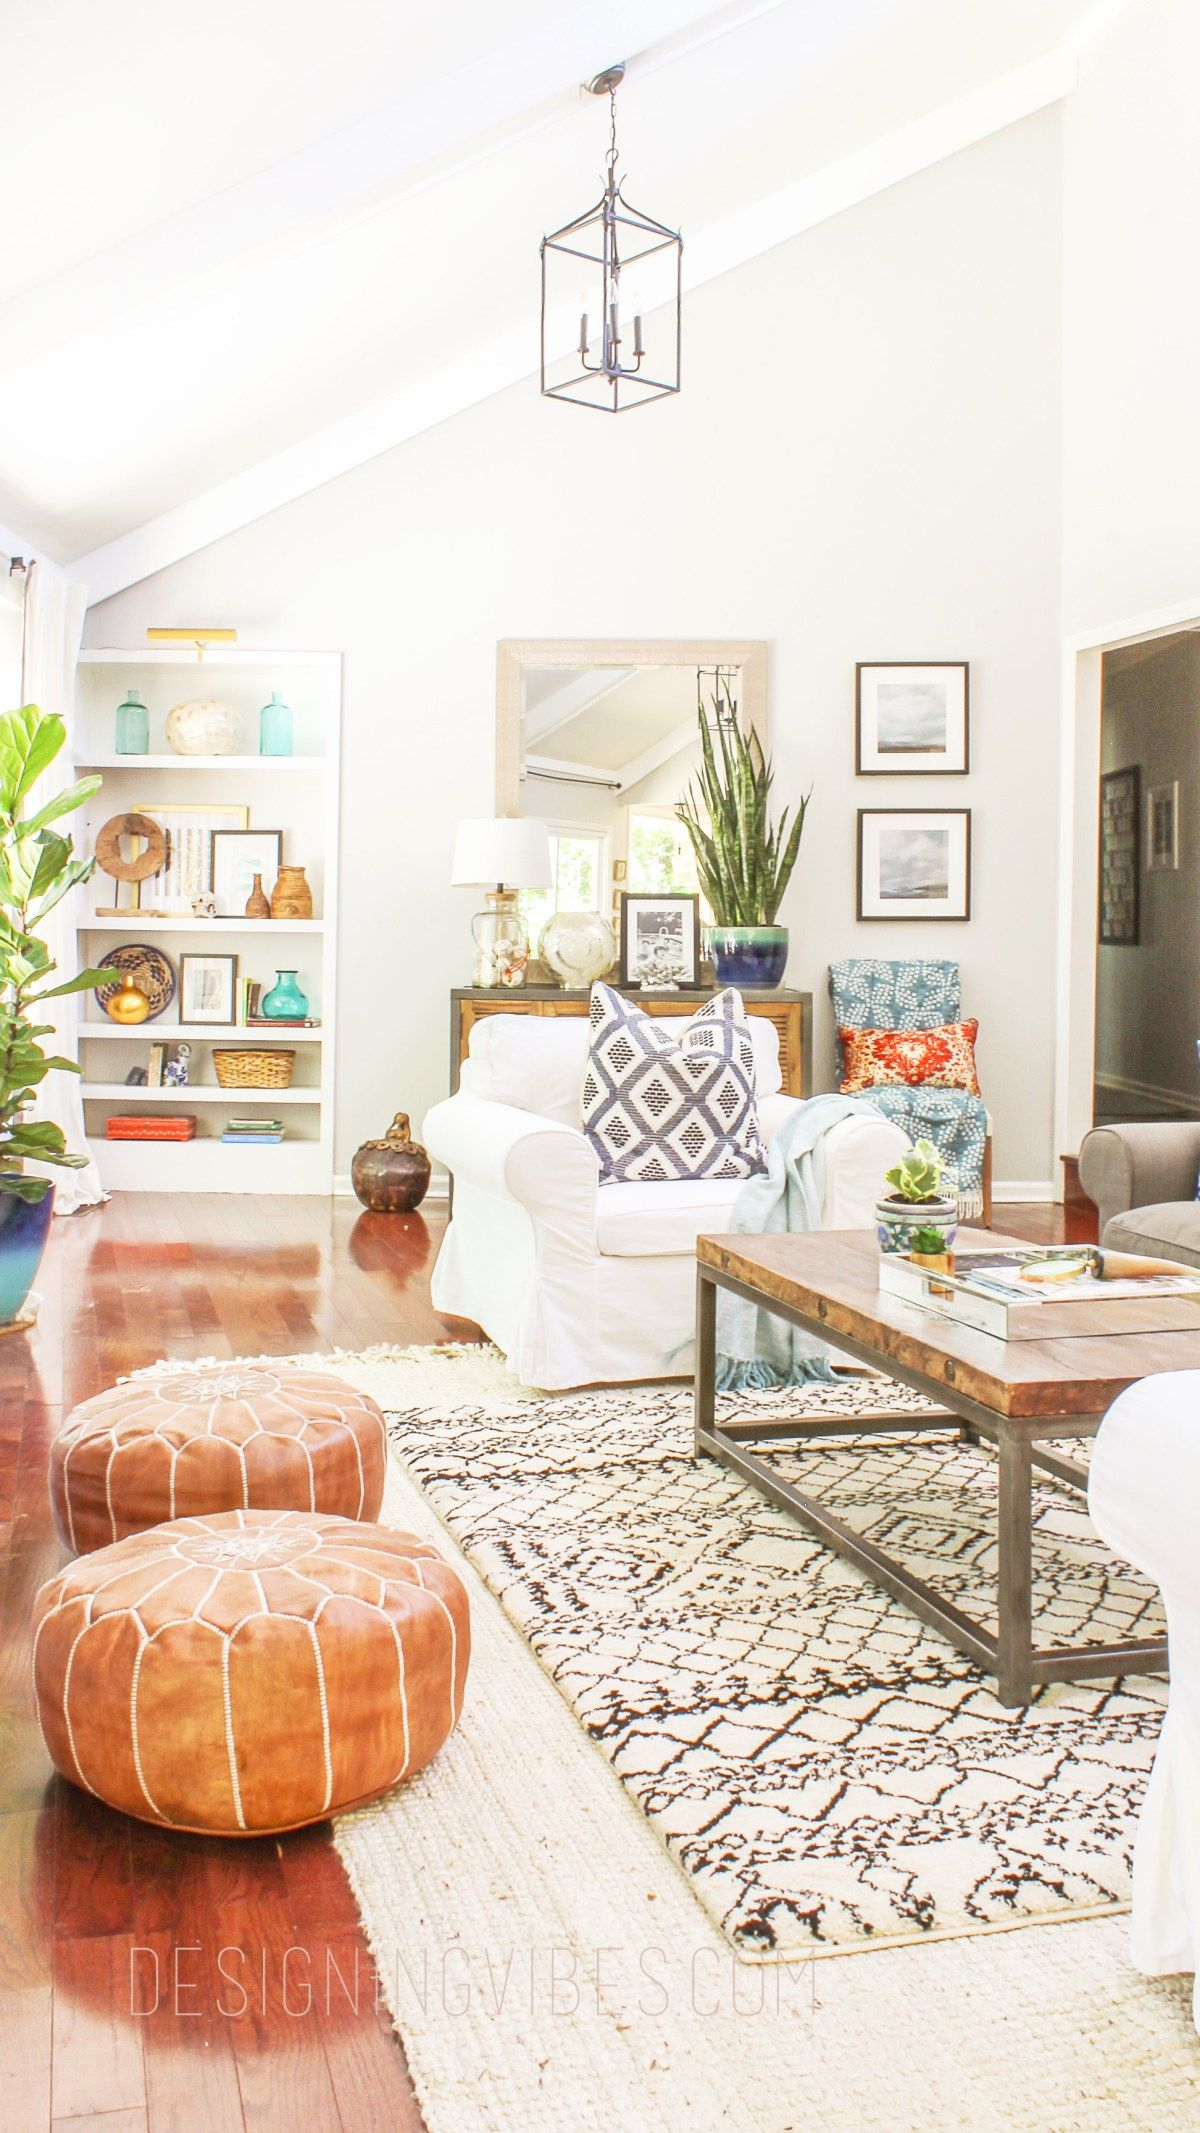 Living Room Pouf Modern Table Design How To Buy Leather Moroccan Poufs On The Cheap Boho Get Real For Decor